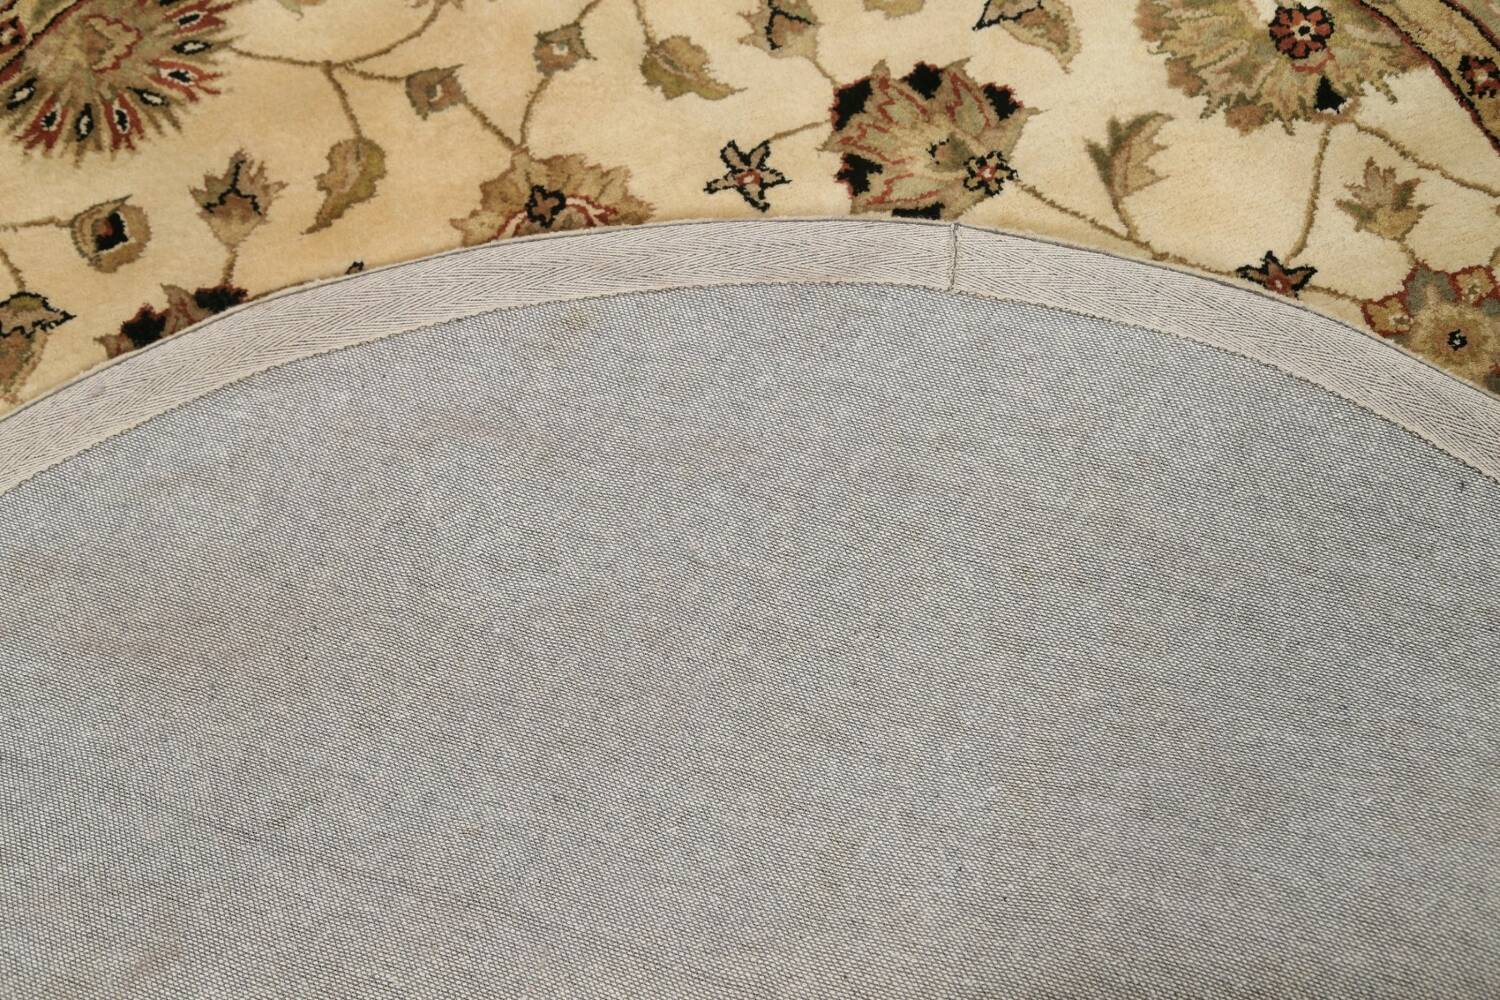 Floral Agra Oriental Area Rug 6x6 Round image 7